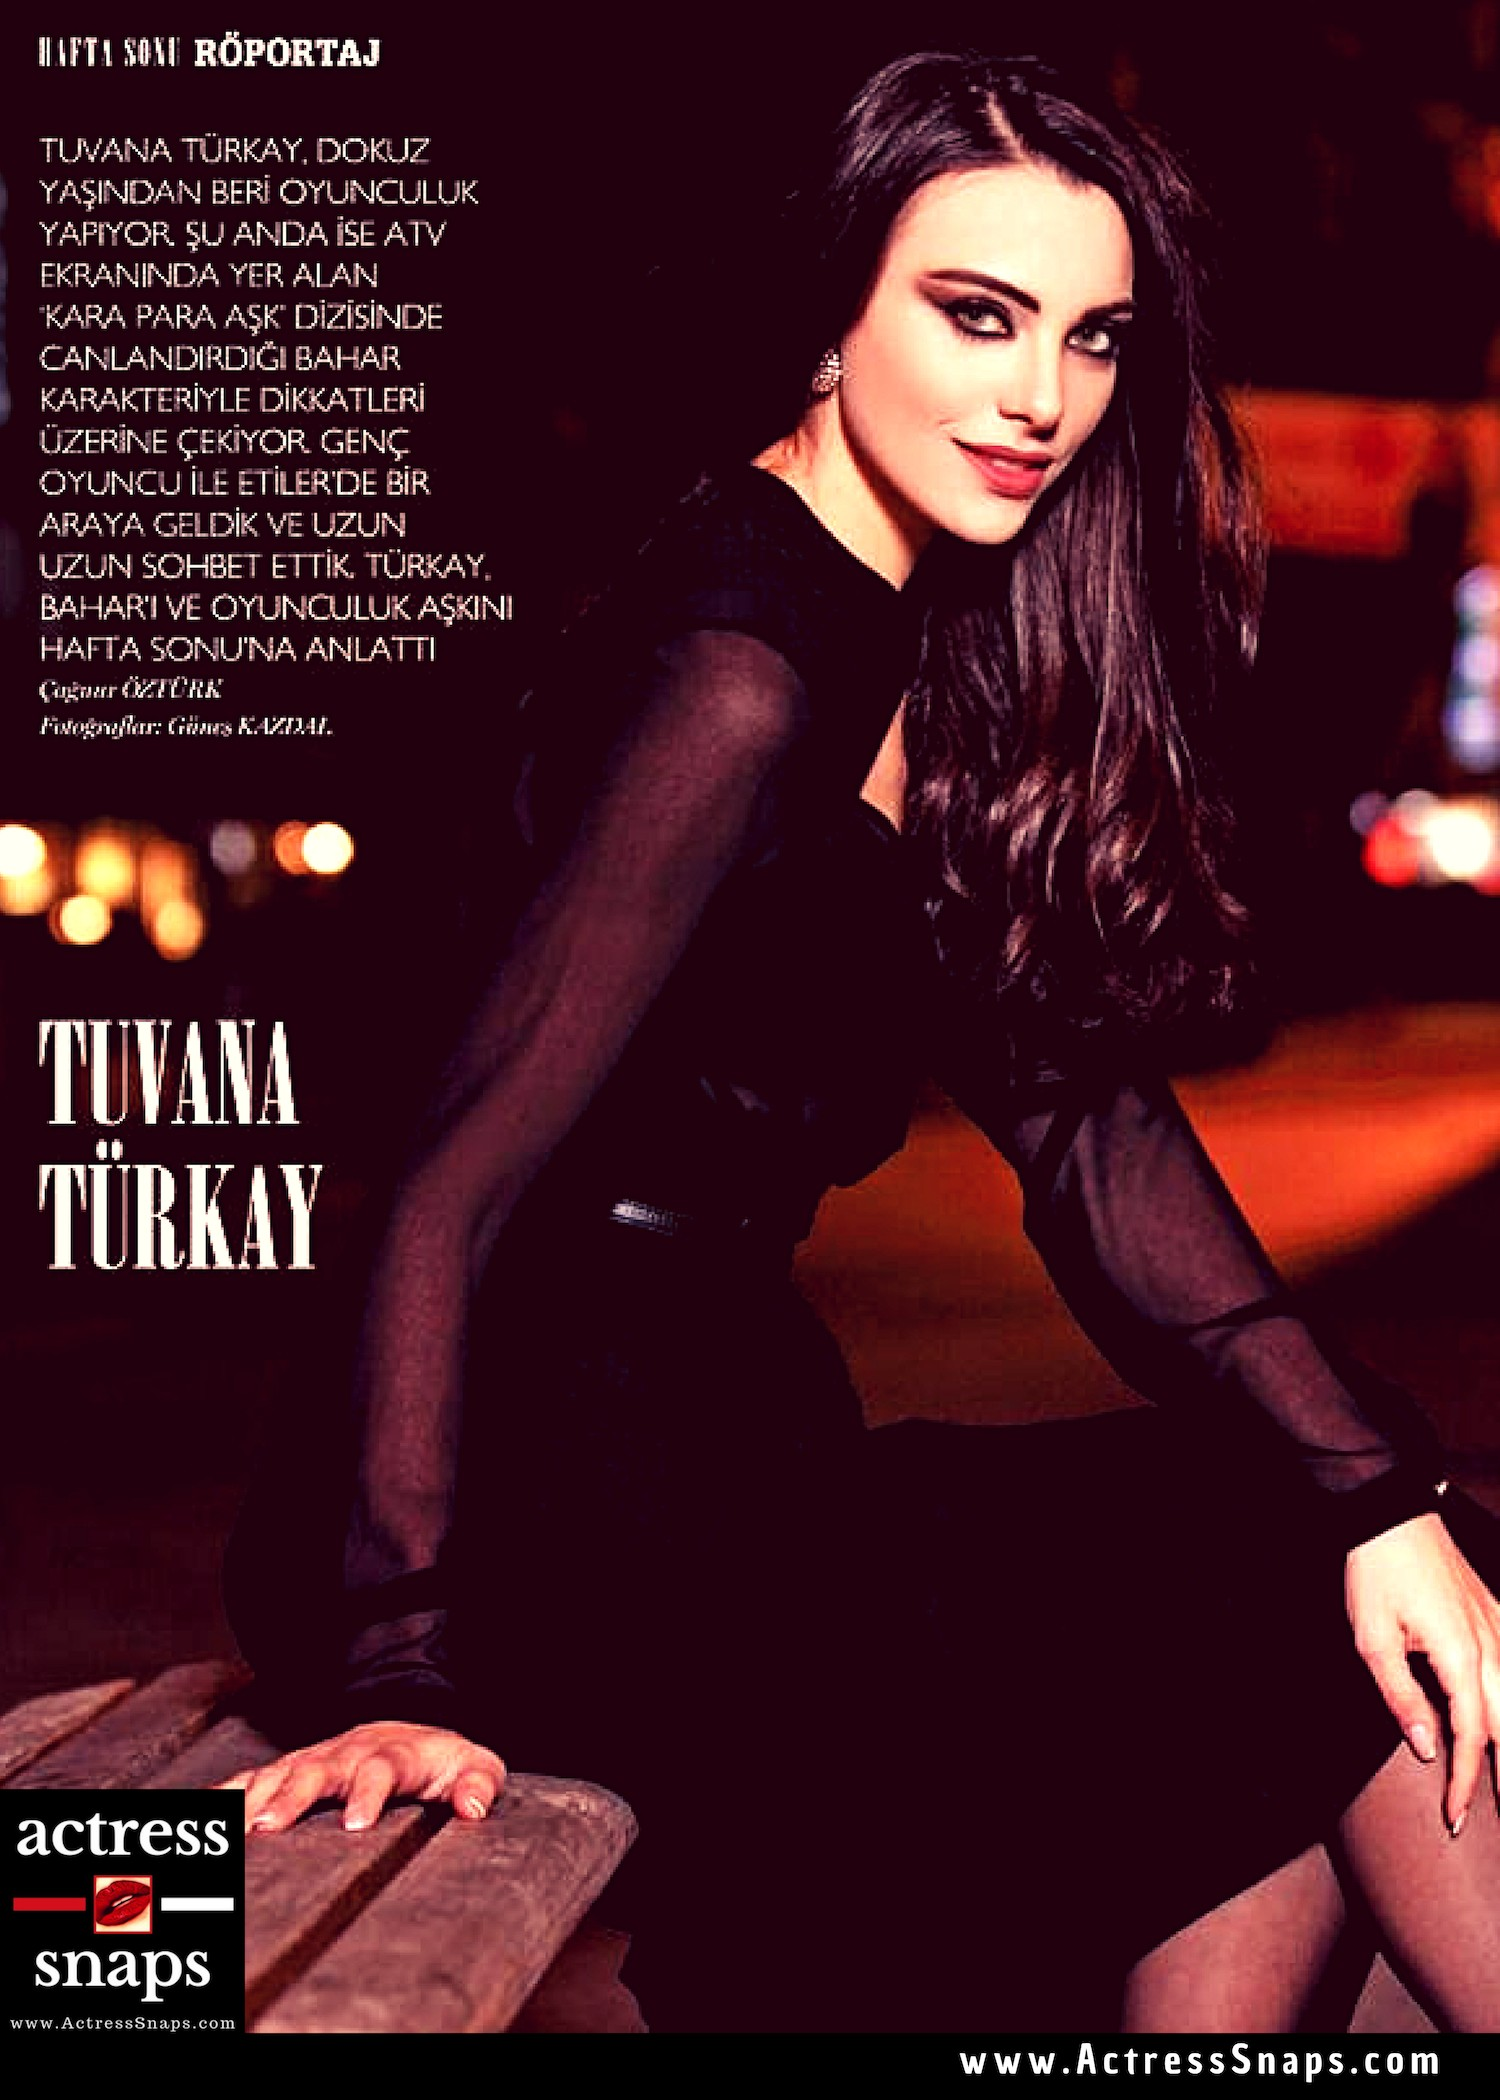 Tuvana Turkay - Beautiful Photos Collection - Sexy Actress Pictures | Hot Actress Pictures - ActressSnaps.com